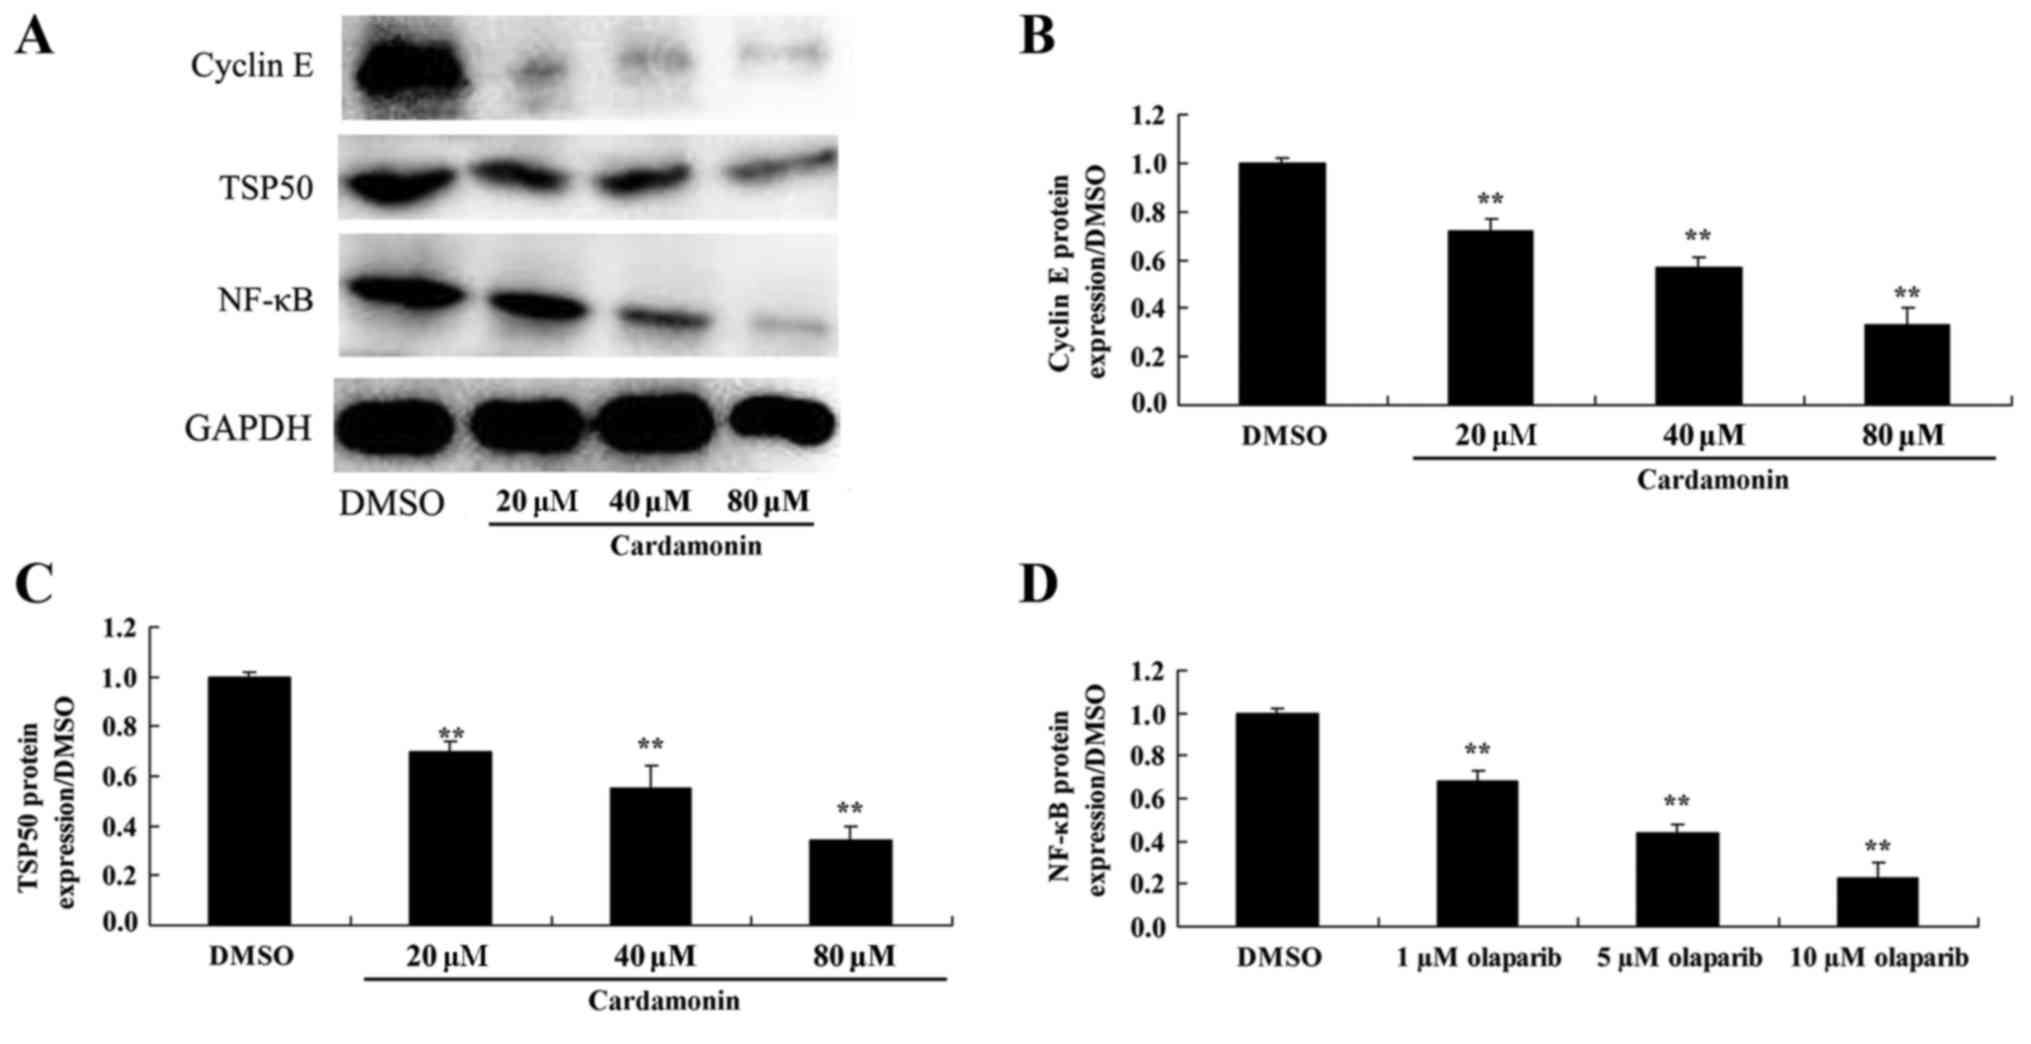 Cardamonin Reduces Chemotherapy Resistance Of Colon Cancer Cells Via The Tsp50 Nf Kb Pathway In Vitro